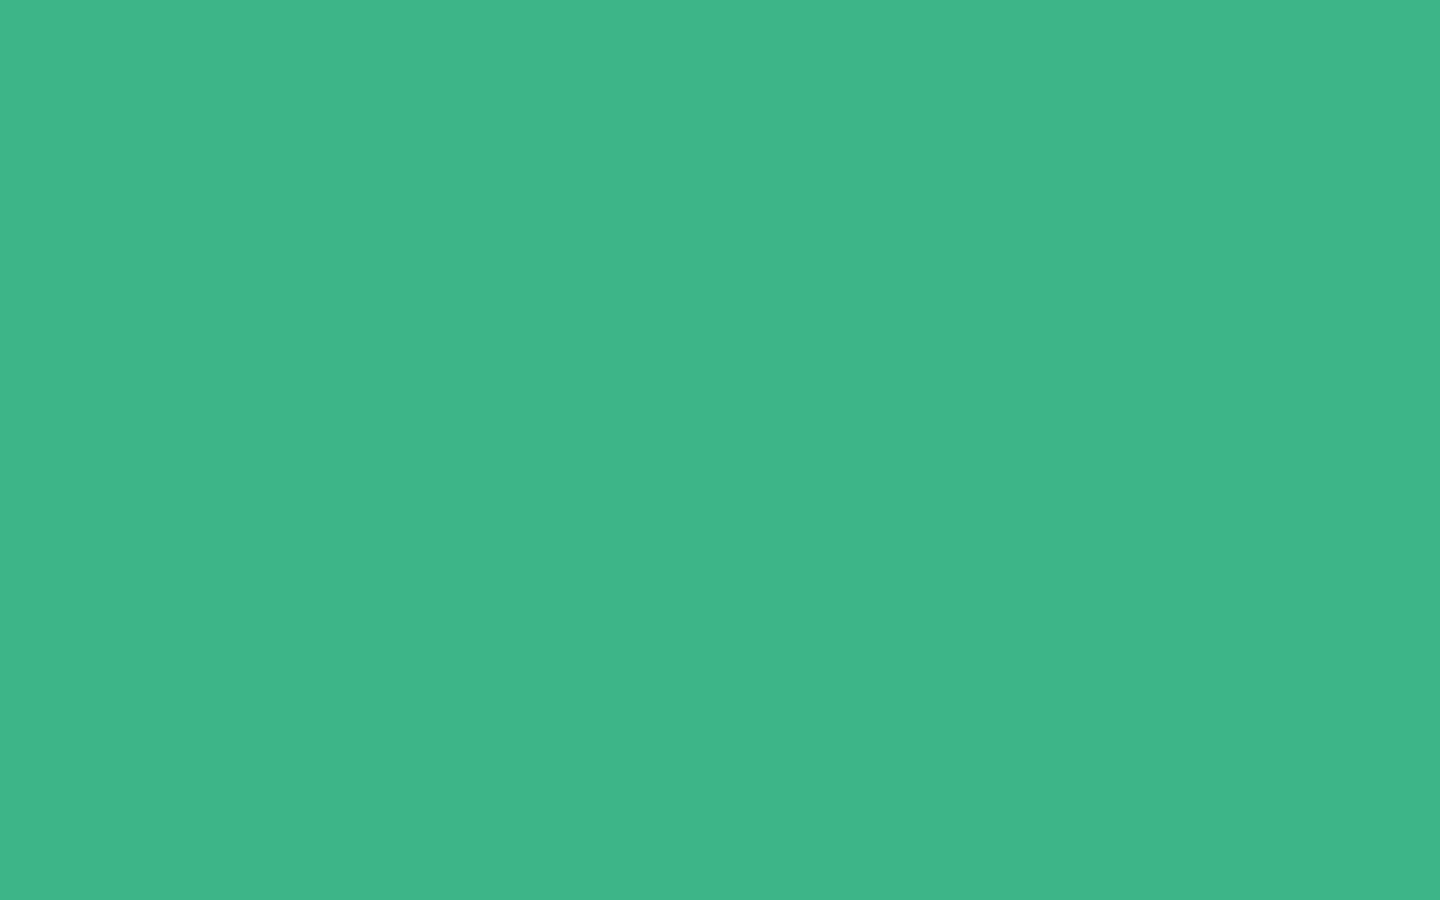 1440x900 Mint Solid Color Background